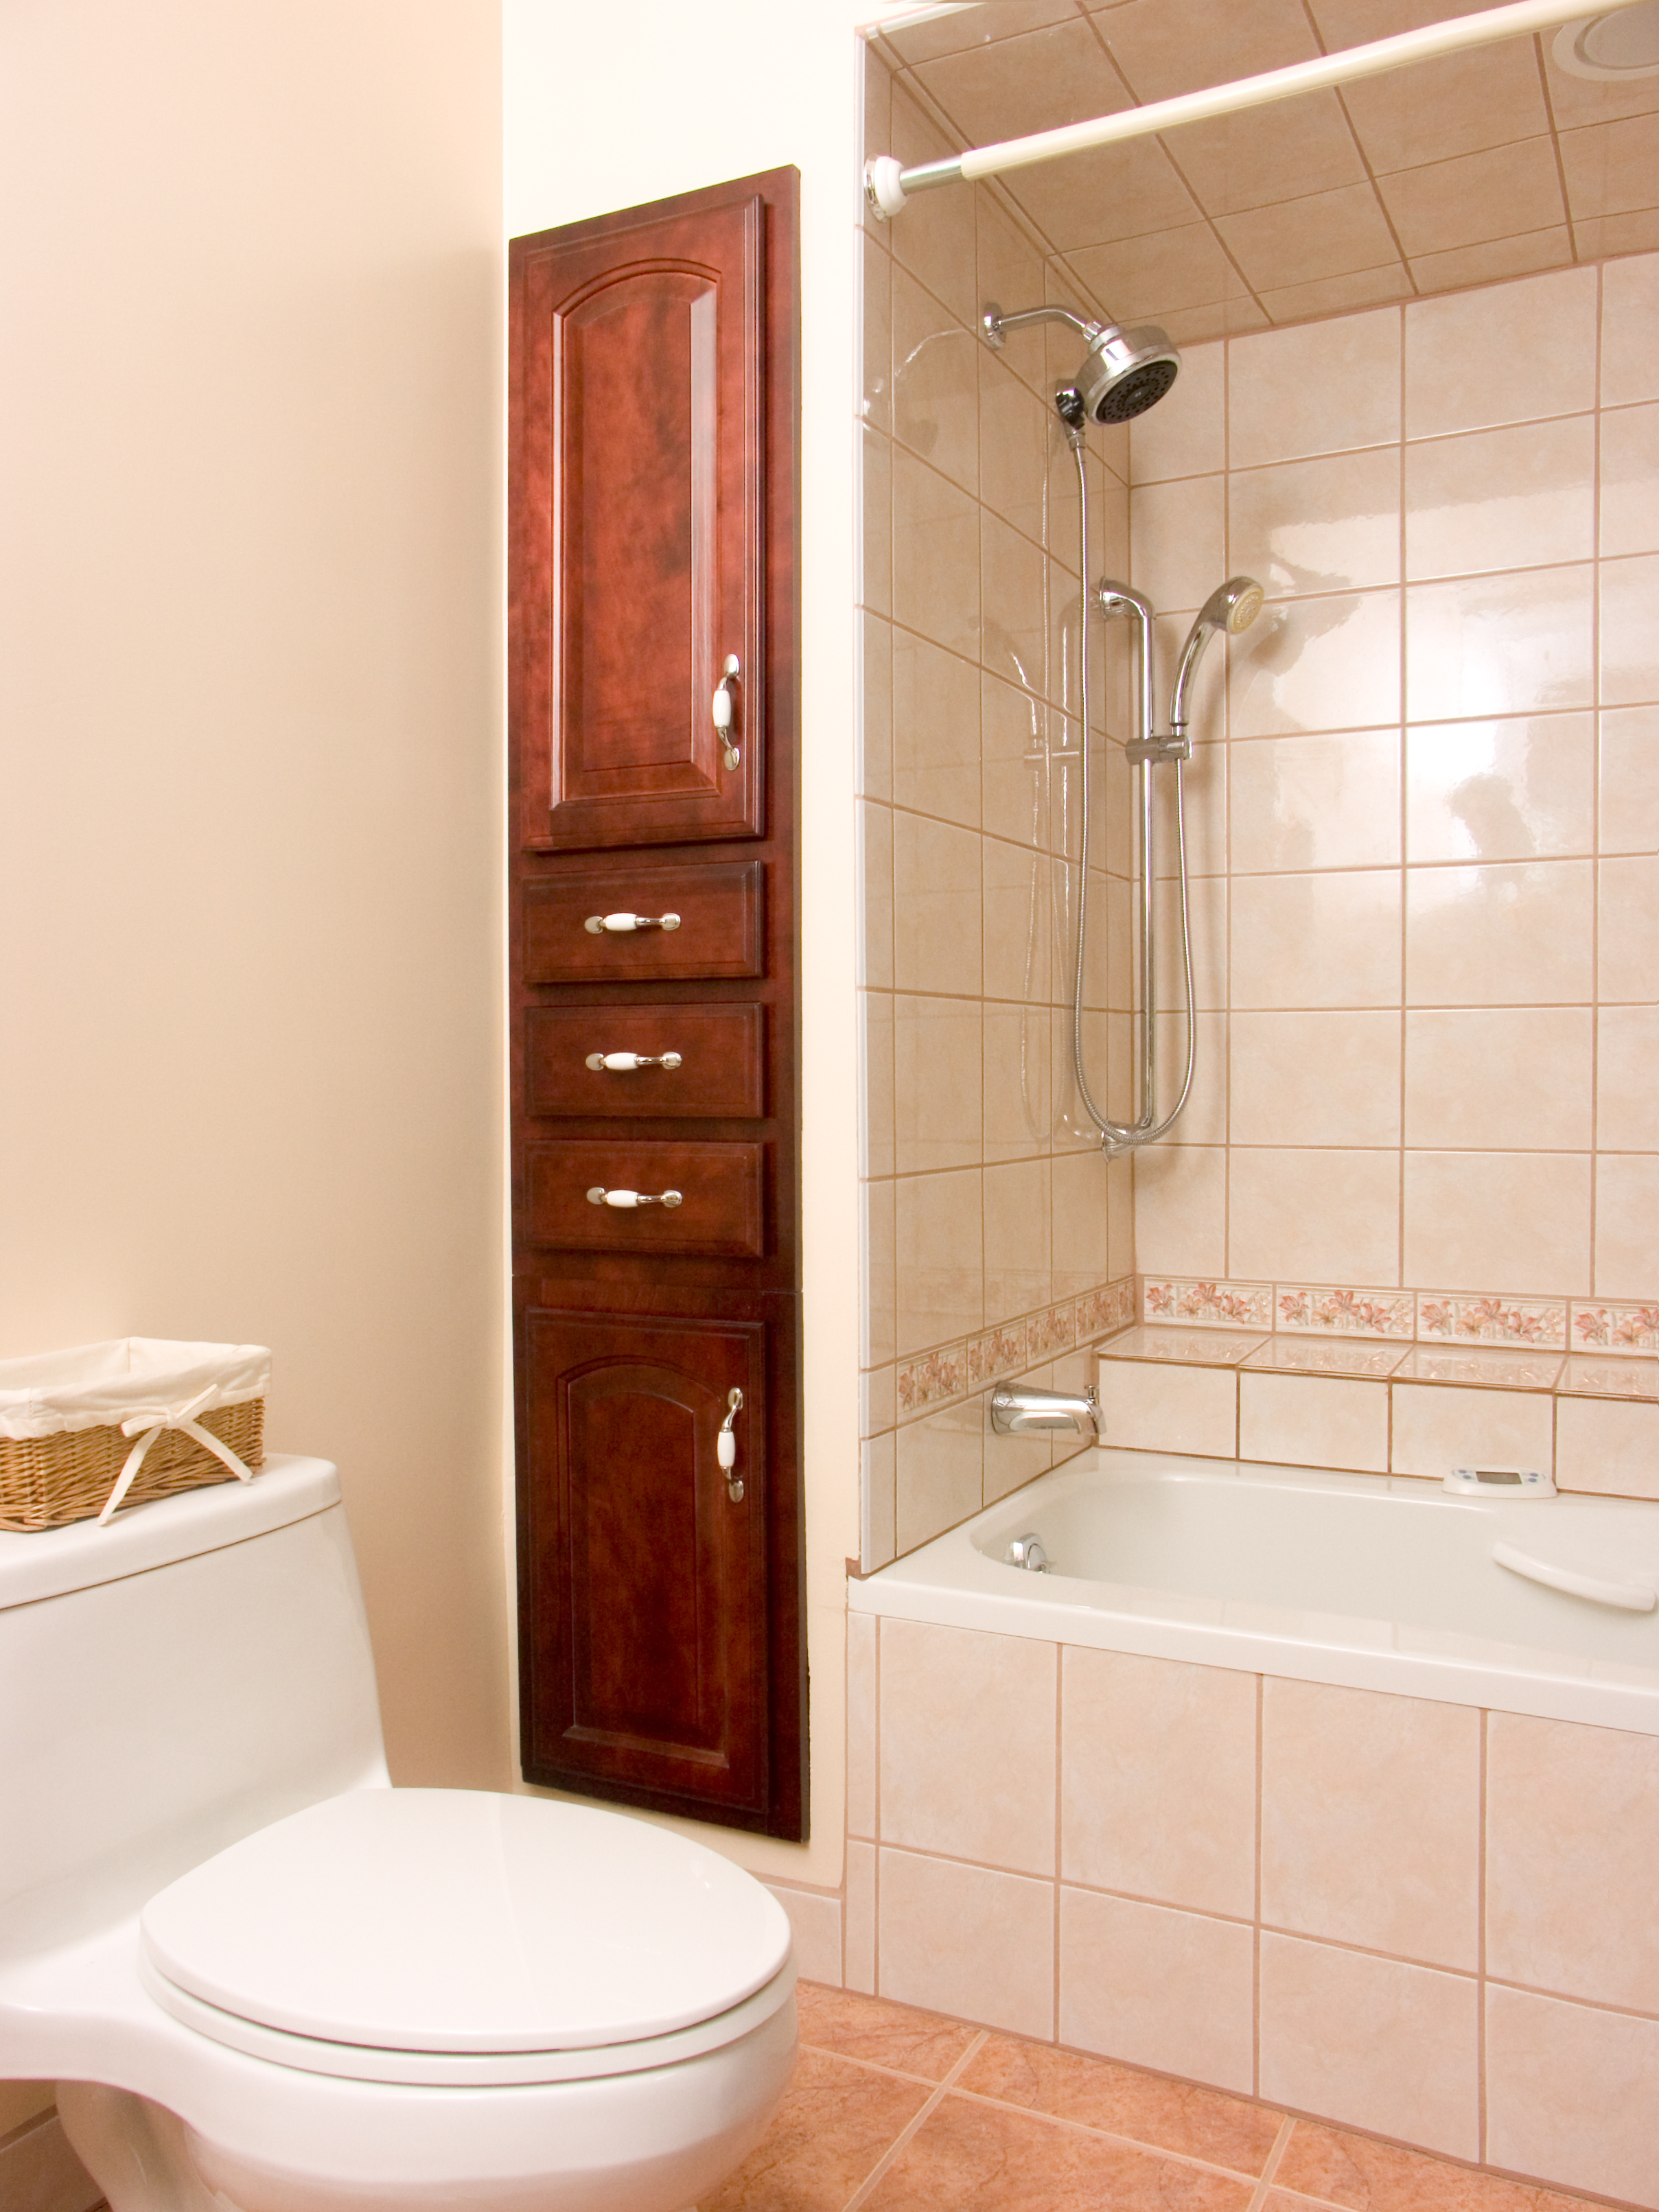 BATHROOMS Copy of Janu 18 Spiker-009.JPG